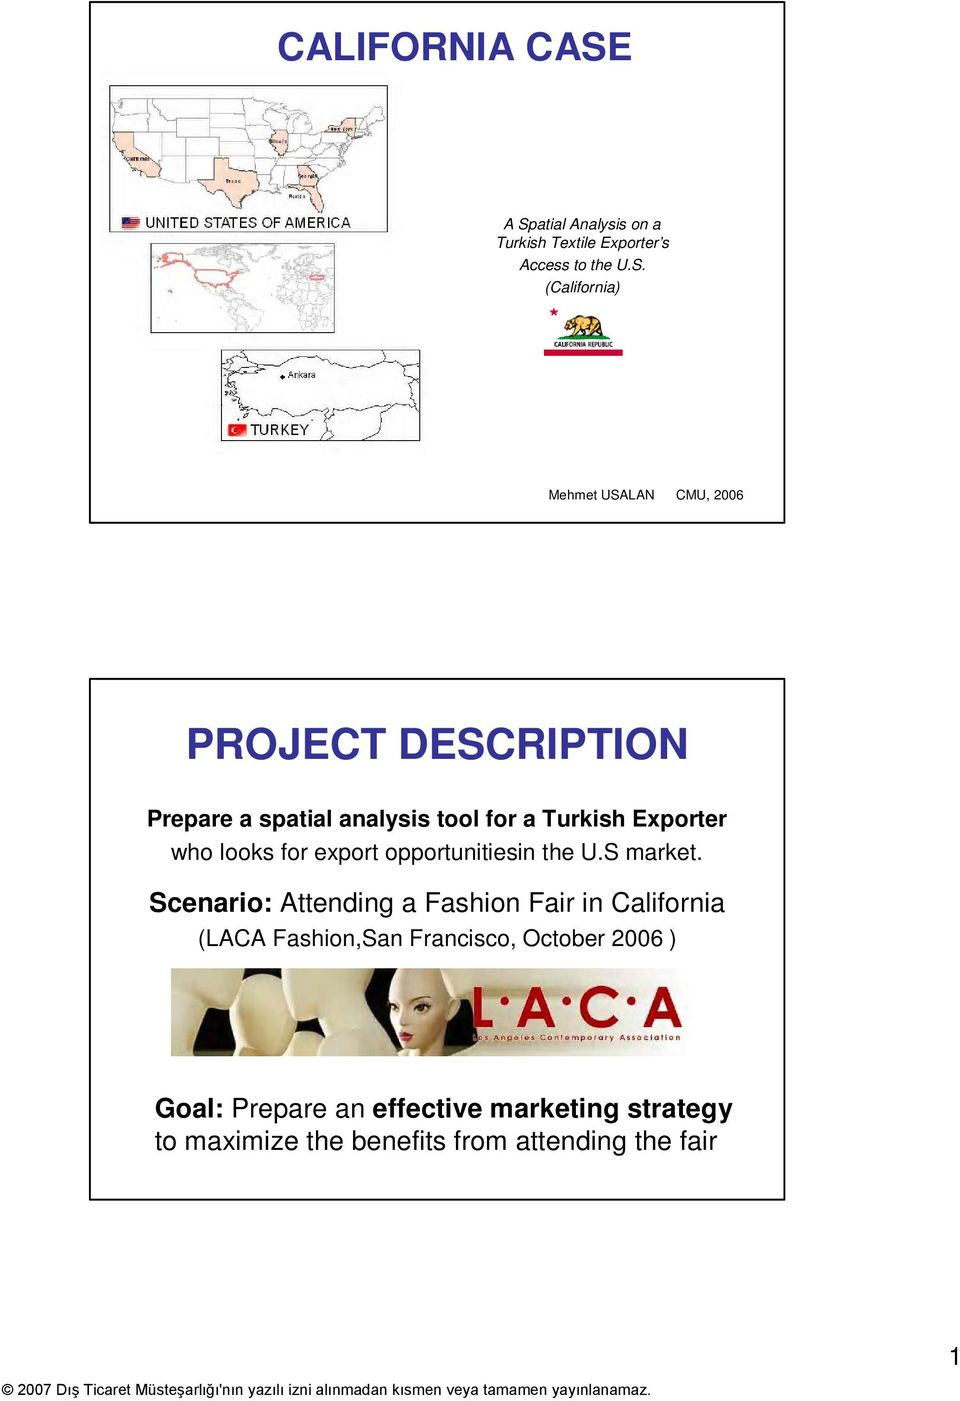 PROJECT DESCRIPTION Prepare a spatial analysis tool for a Turkish Exporter who looks for export